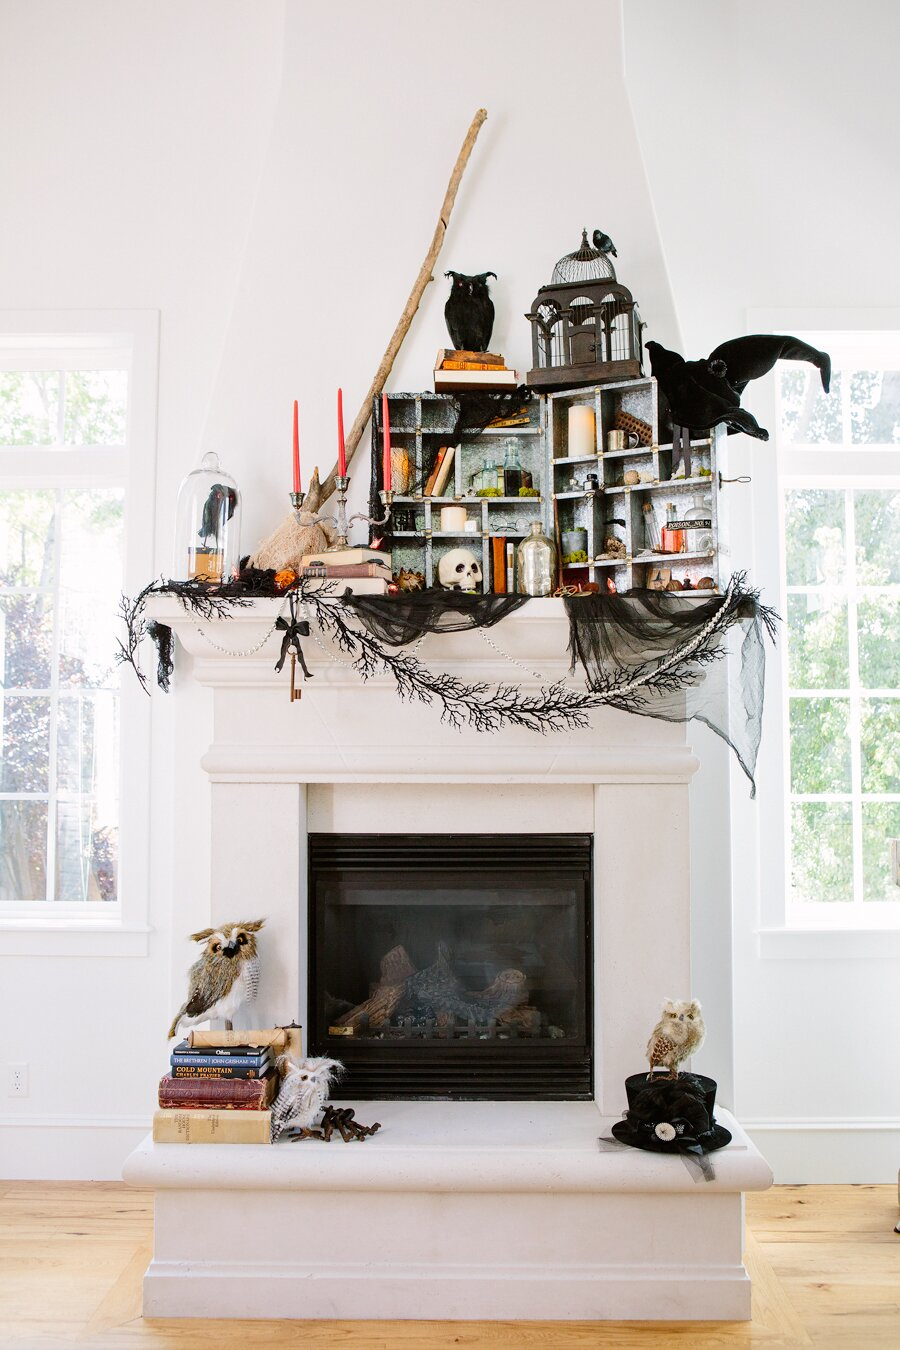 10 Creative Places to Decorate Your House for Halloween